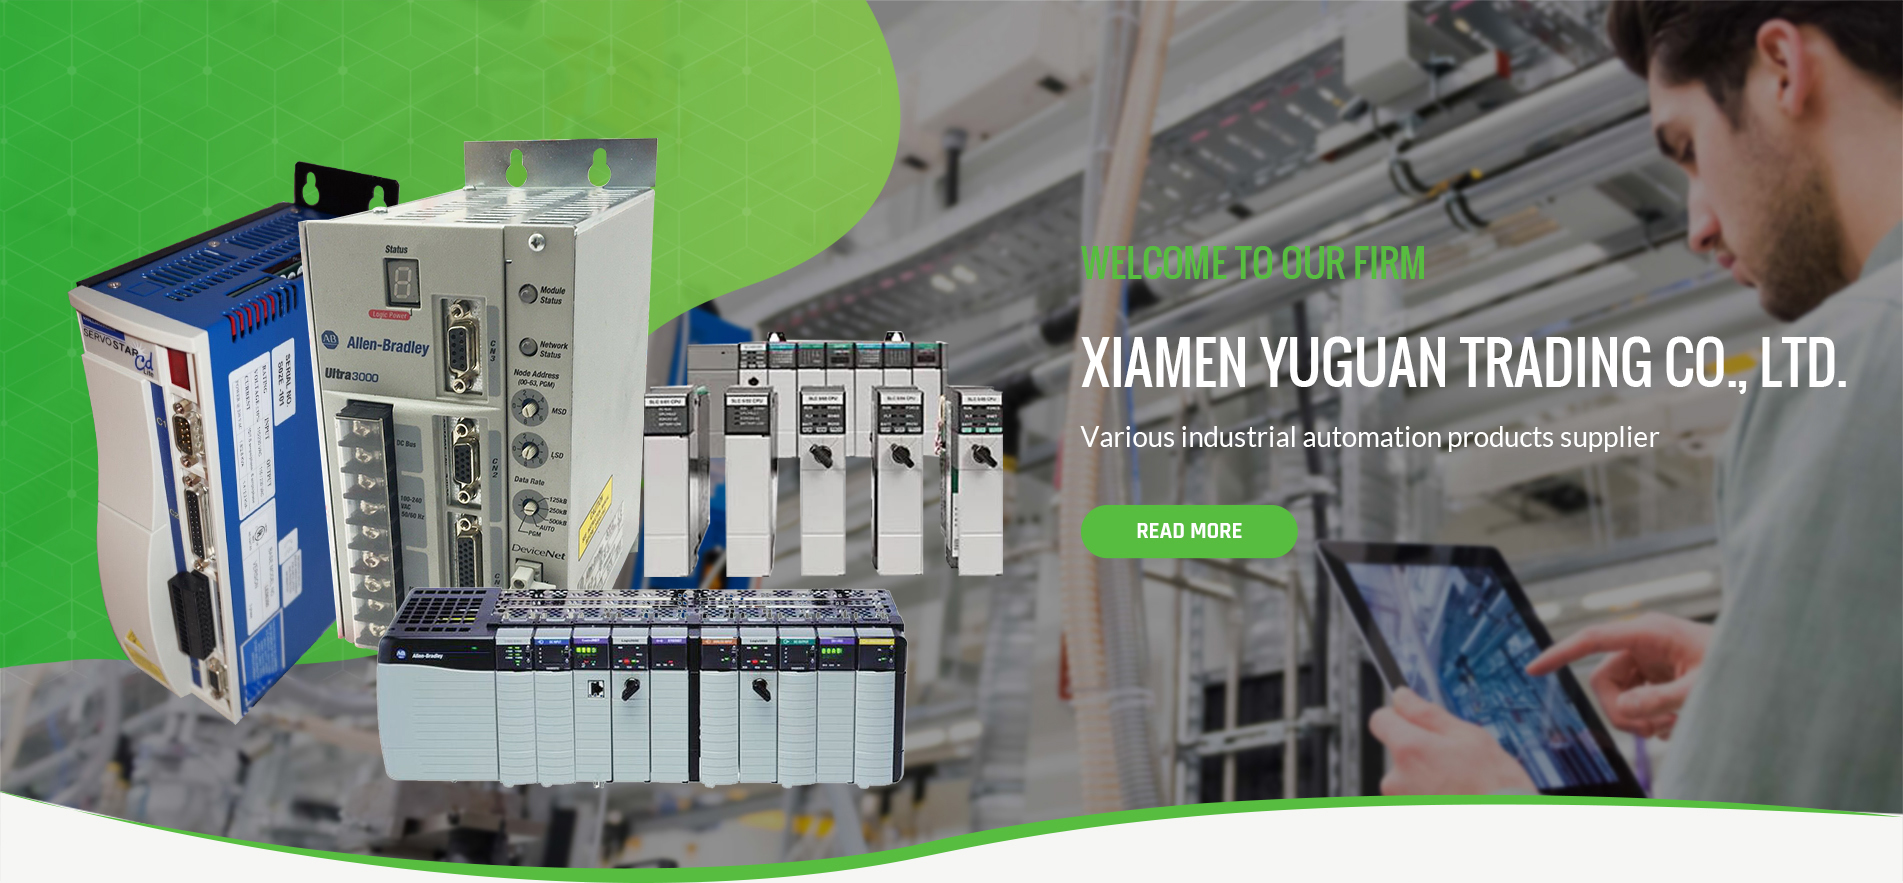 Xiamen Yuguan Trading Co., Ltd.